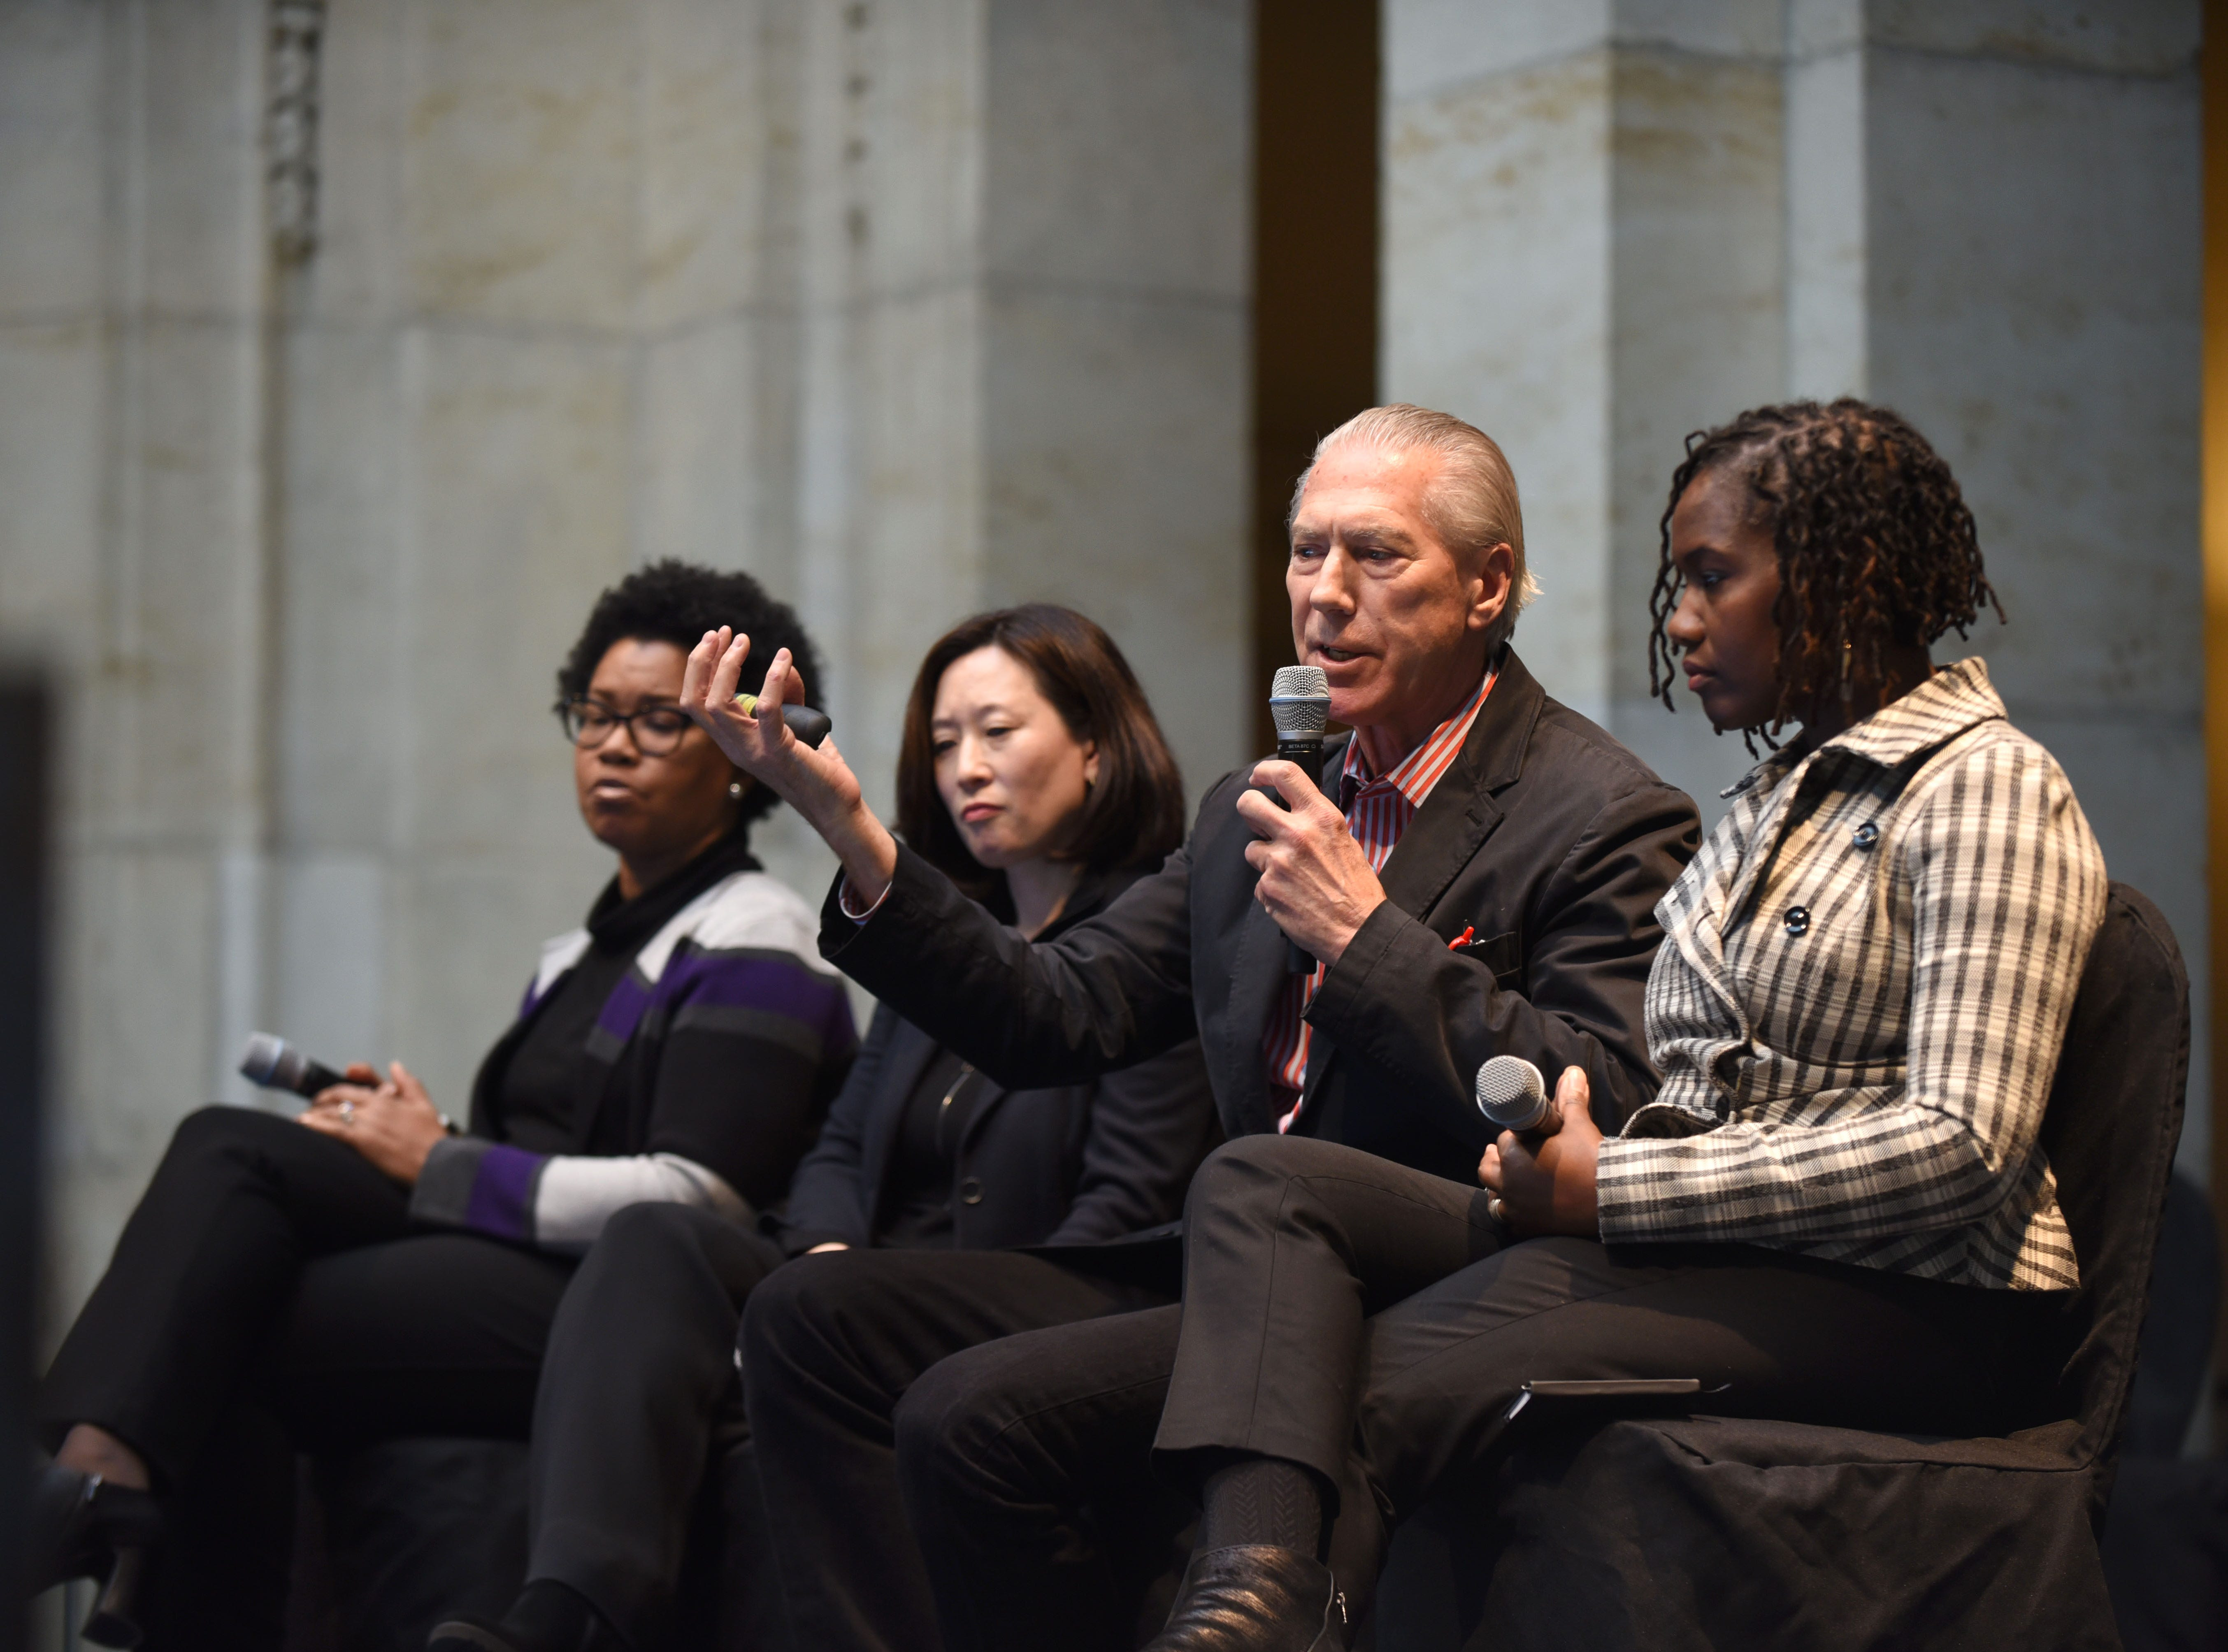 Jamie Carpenter (center) along with Sarida Scott (from left), Mikyoung Kim, and Kemba Braynon address a jury panel and members of the community for their finalist presentation for the DIA Plaza and cultural campus on Wednesday, January 23, 2019 at the Detroit Institute of the Arts.